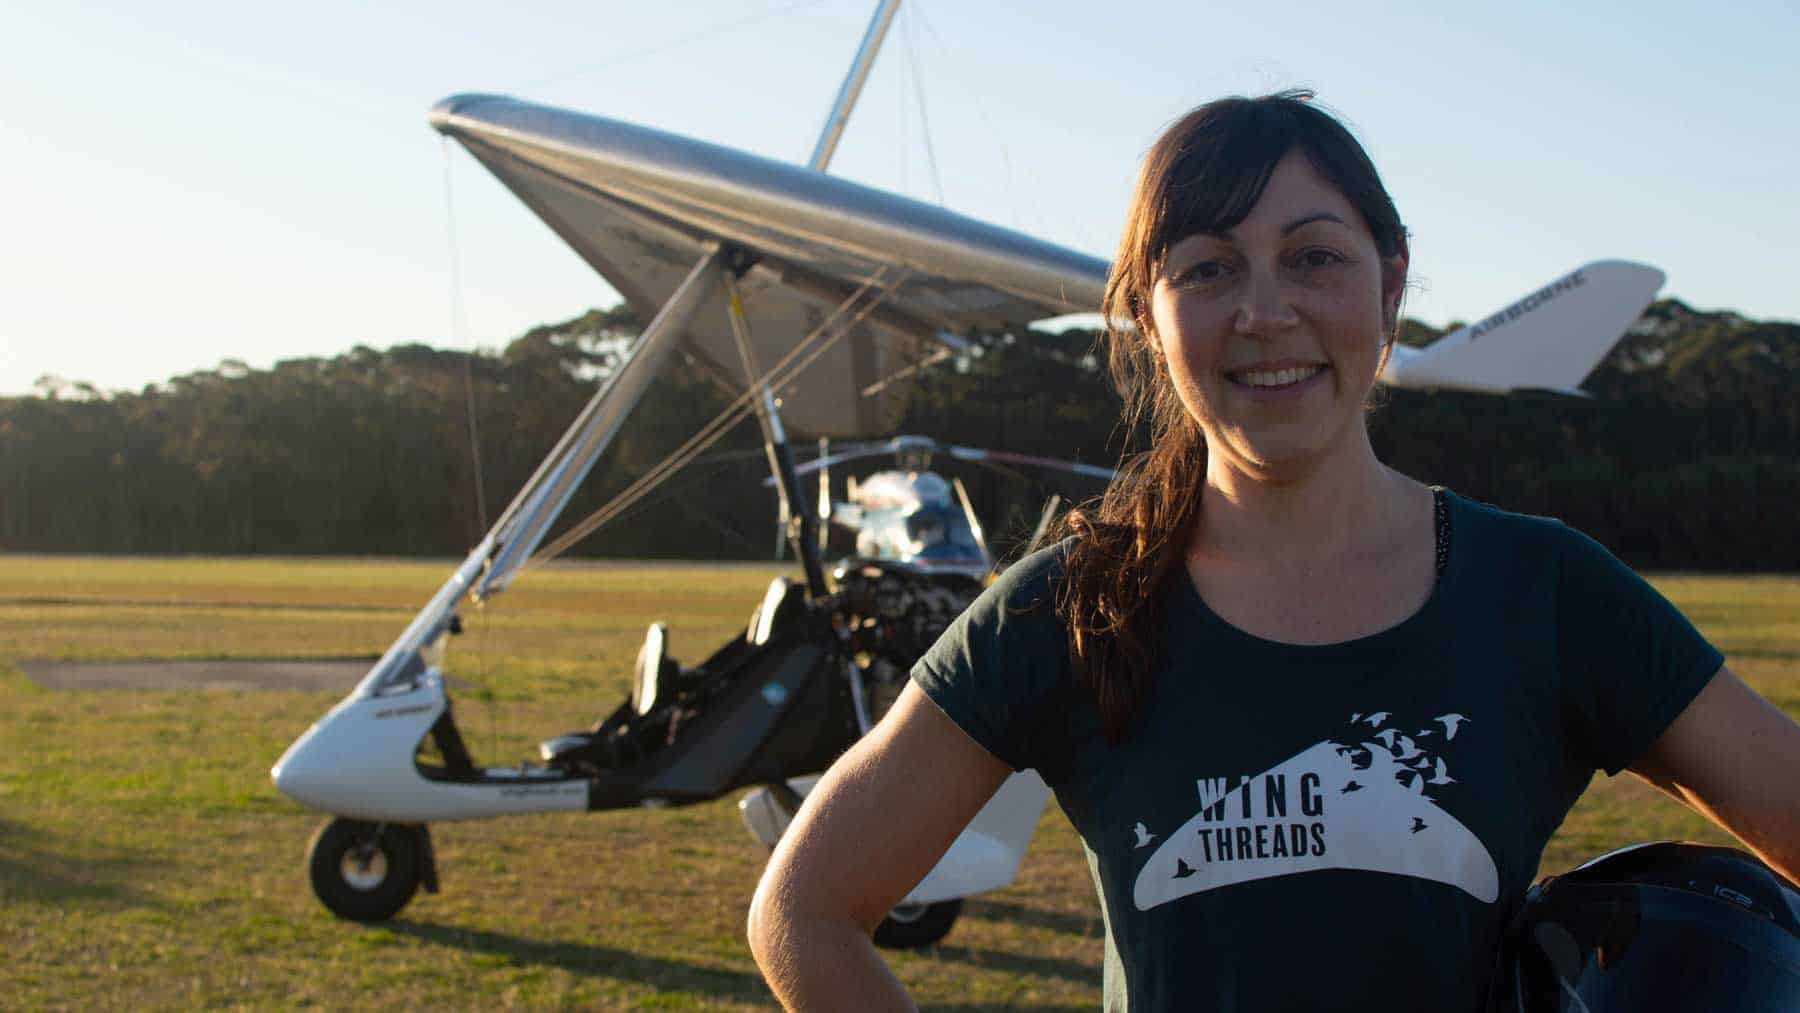 Amellia Formby standing in front of her white microlight aircraft